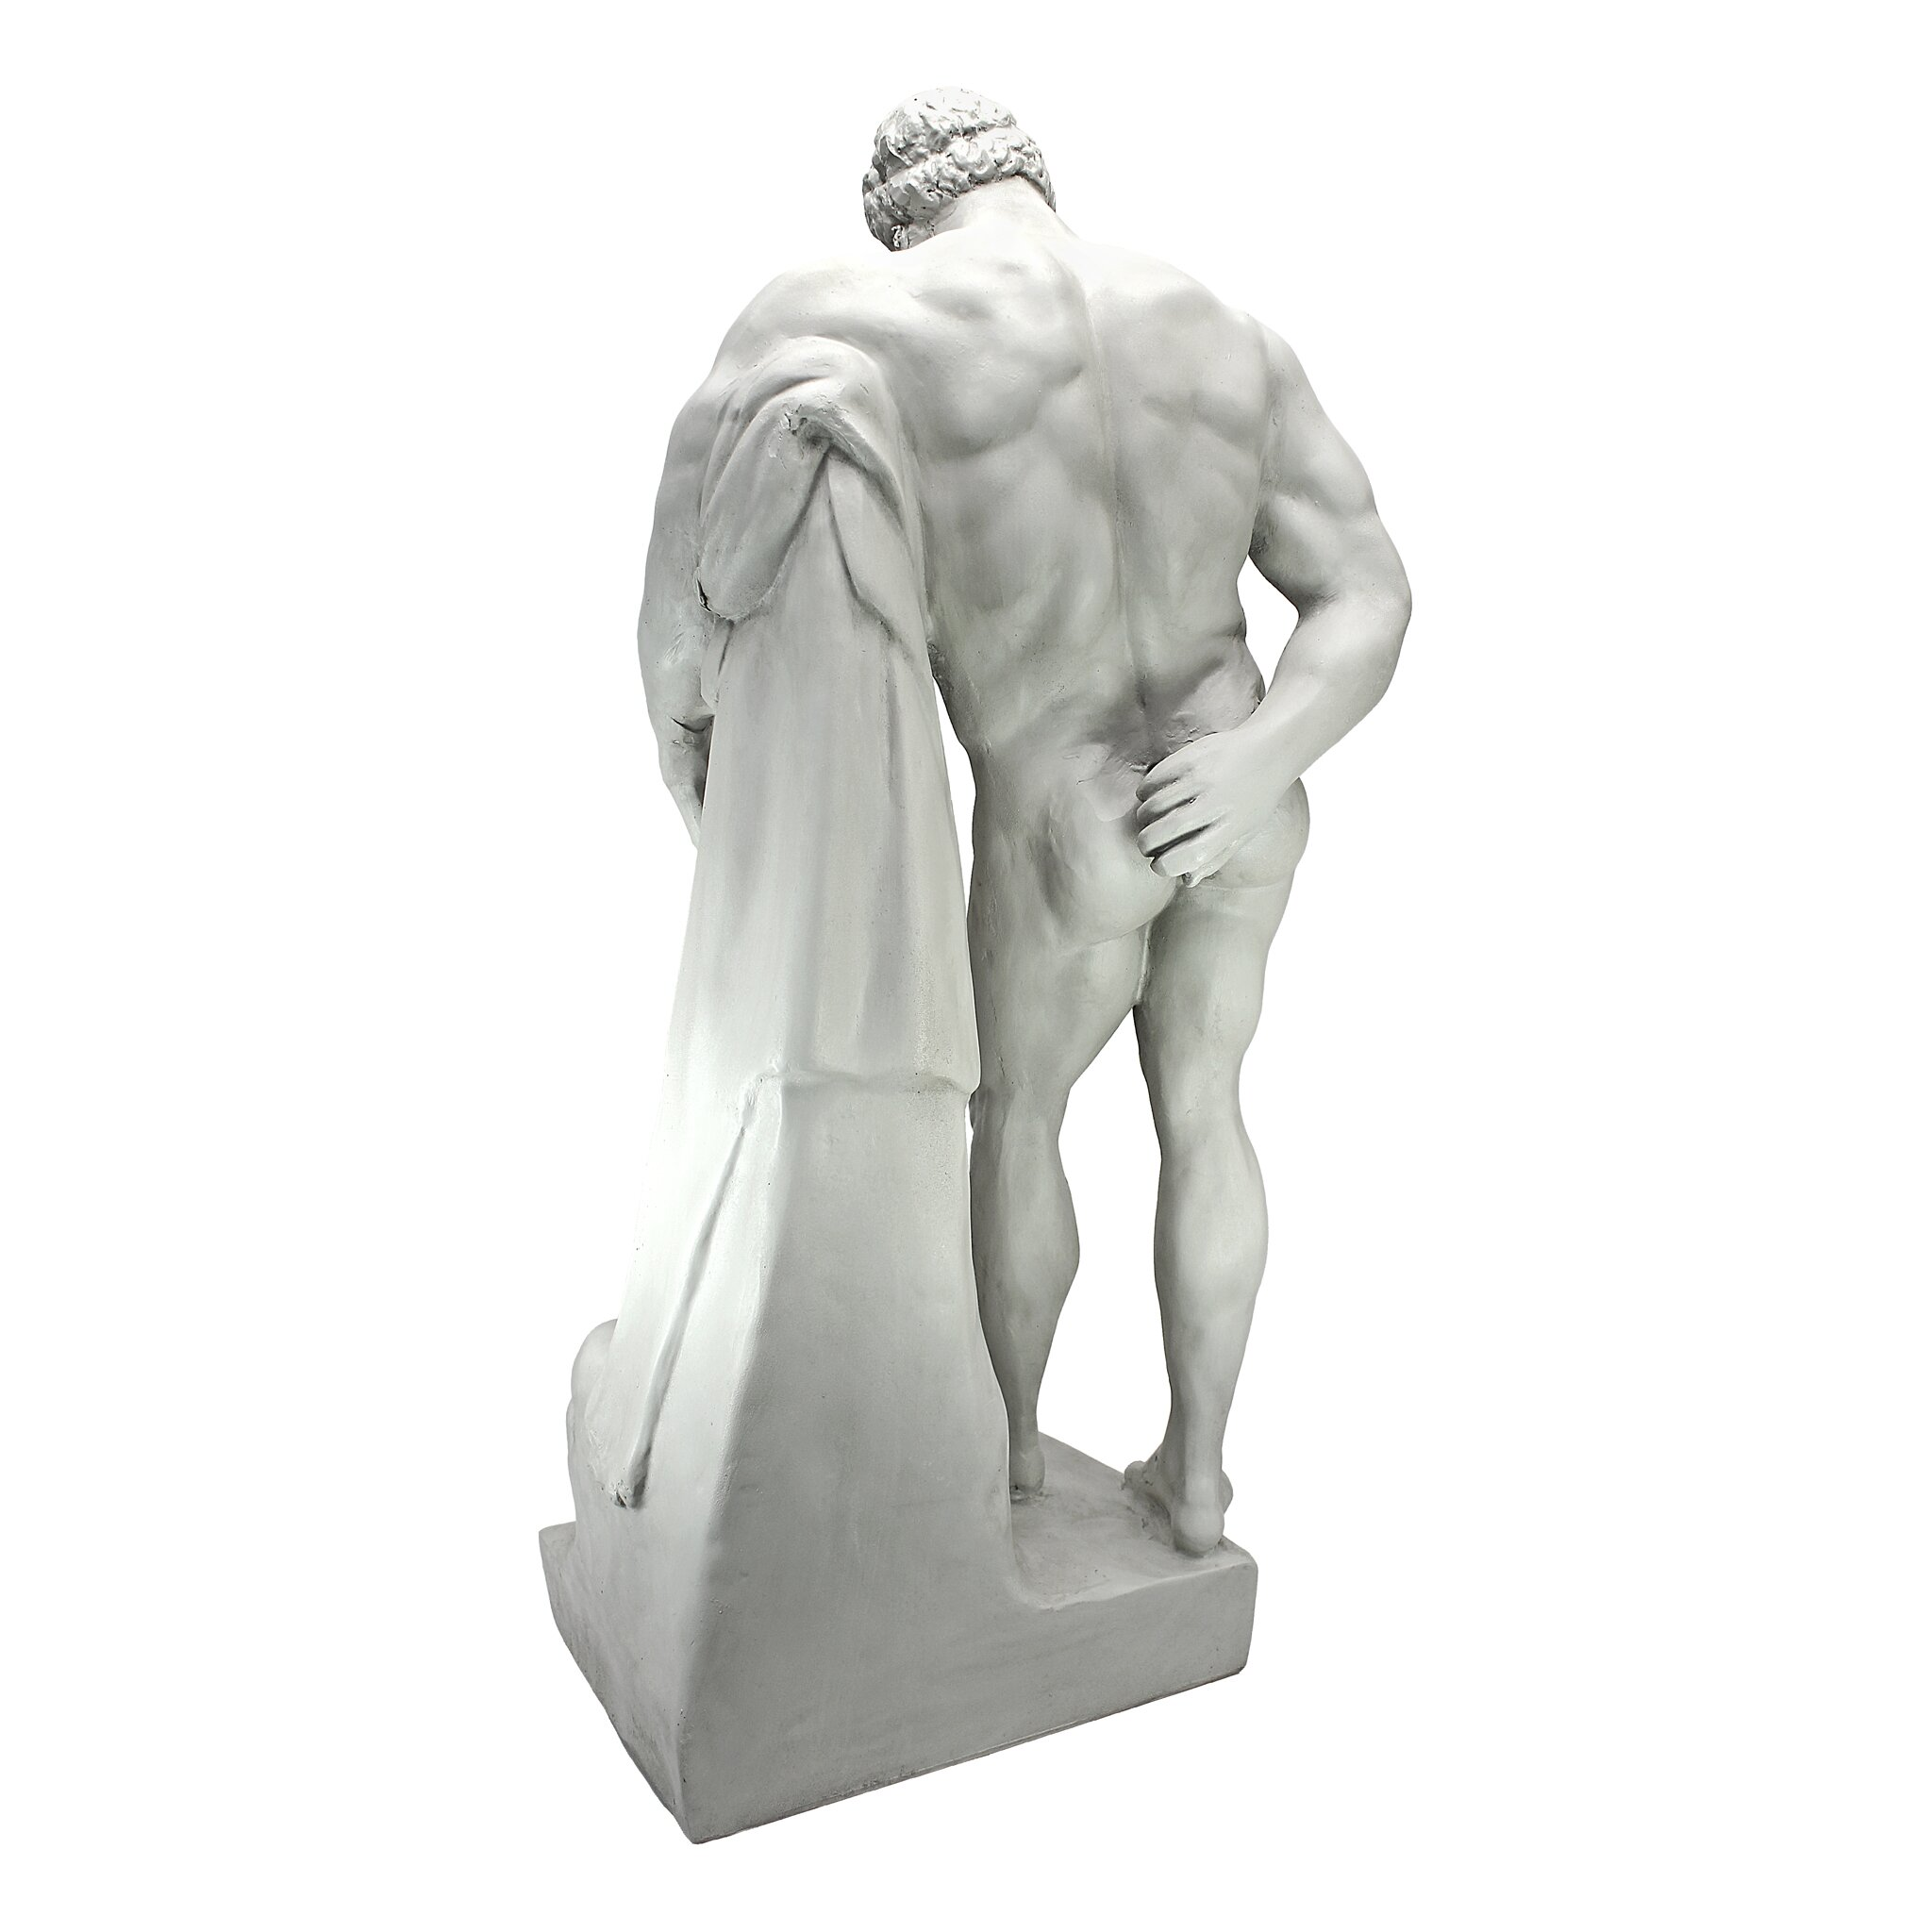 Design Toscano The Farnese Hercules Statue & Reviews